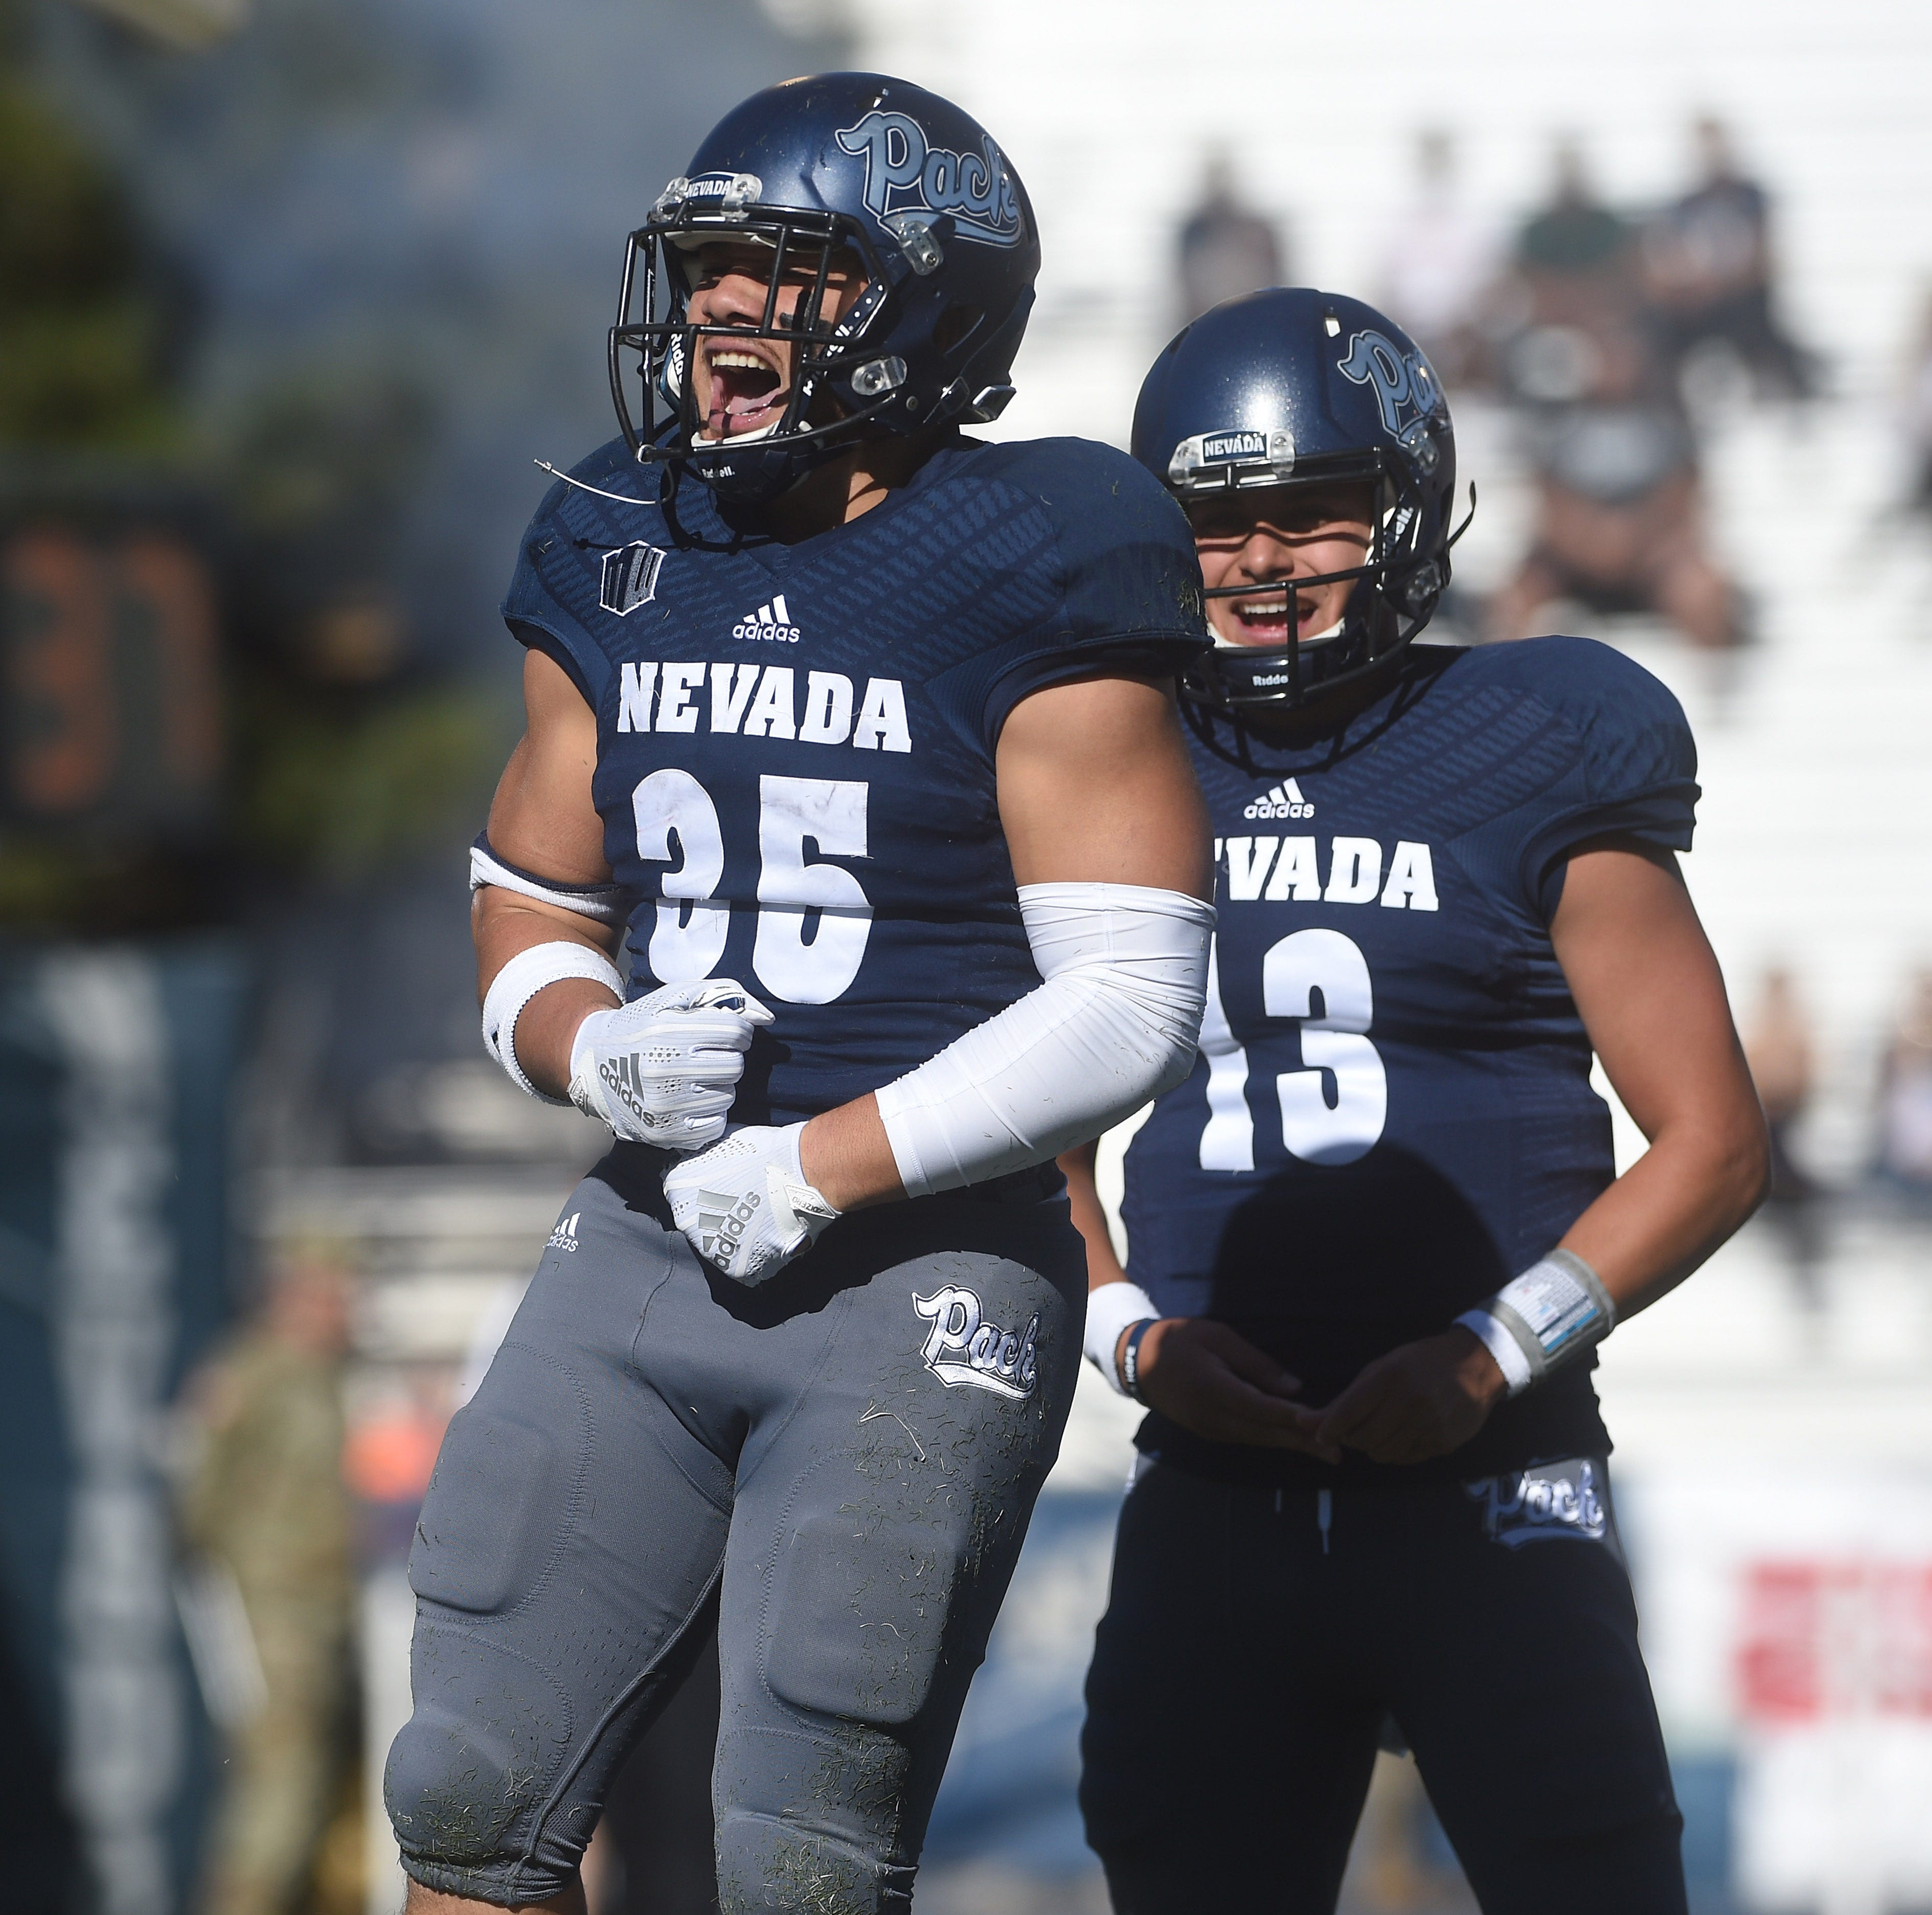 Signature win: Wolf Pack holds on to stun Oregon State, 37-35